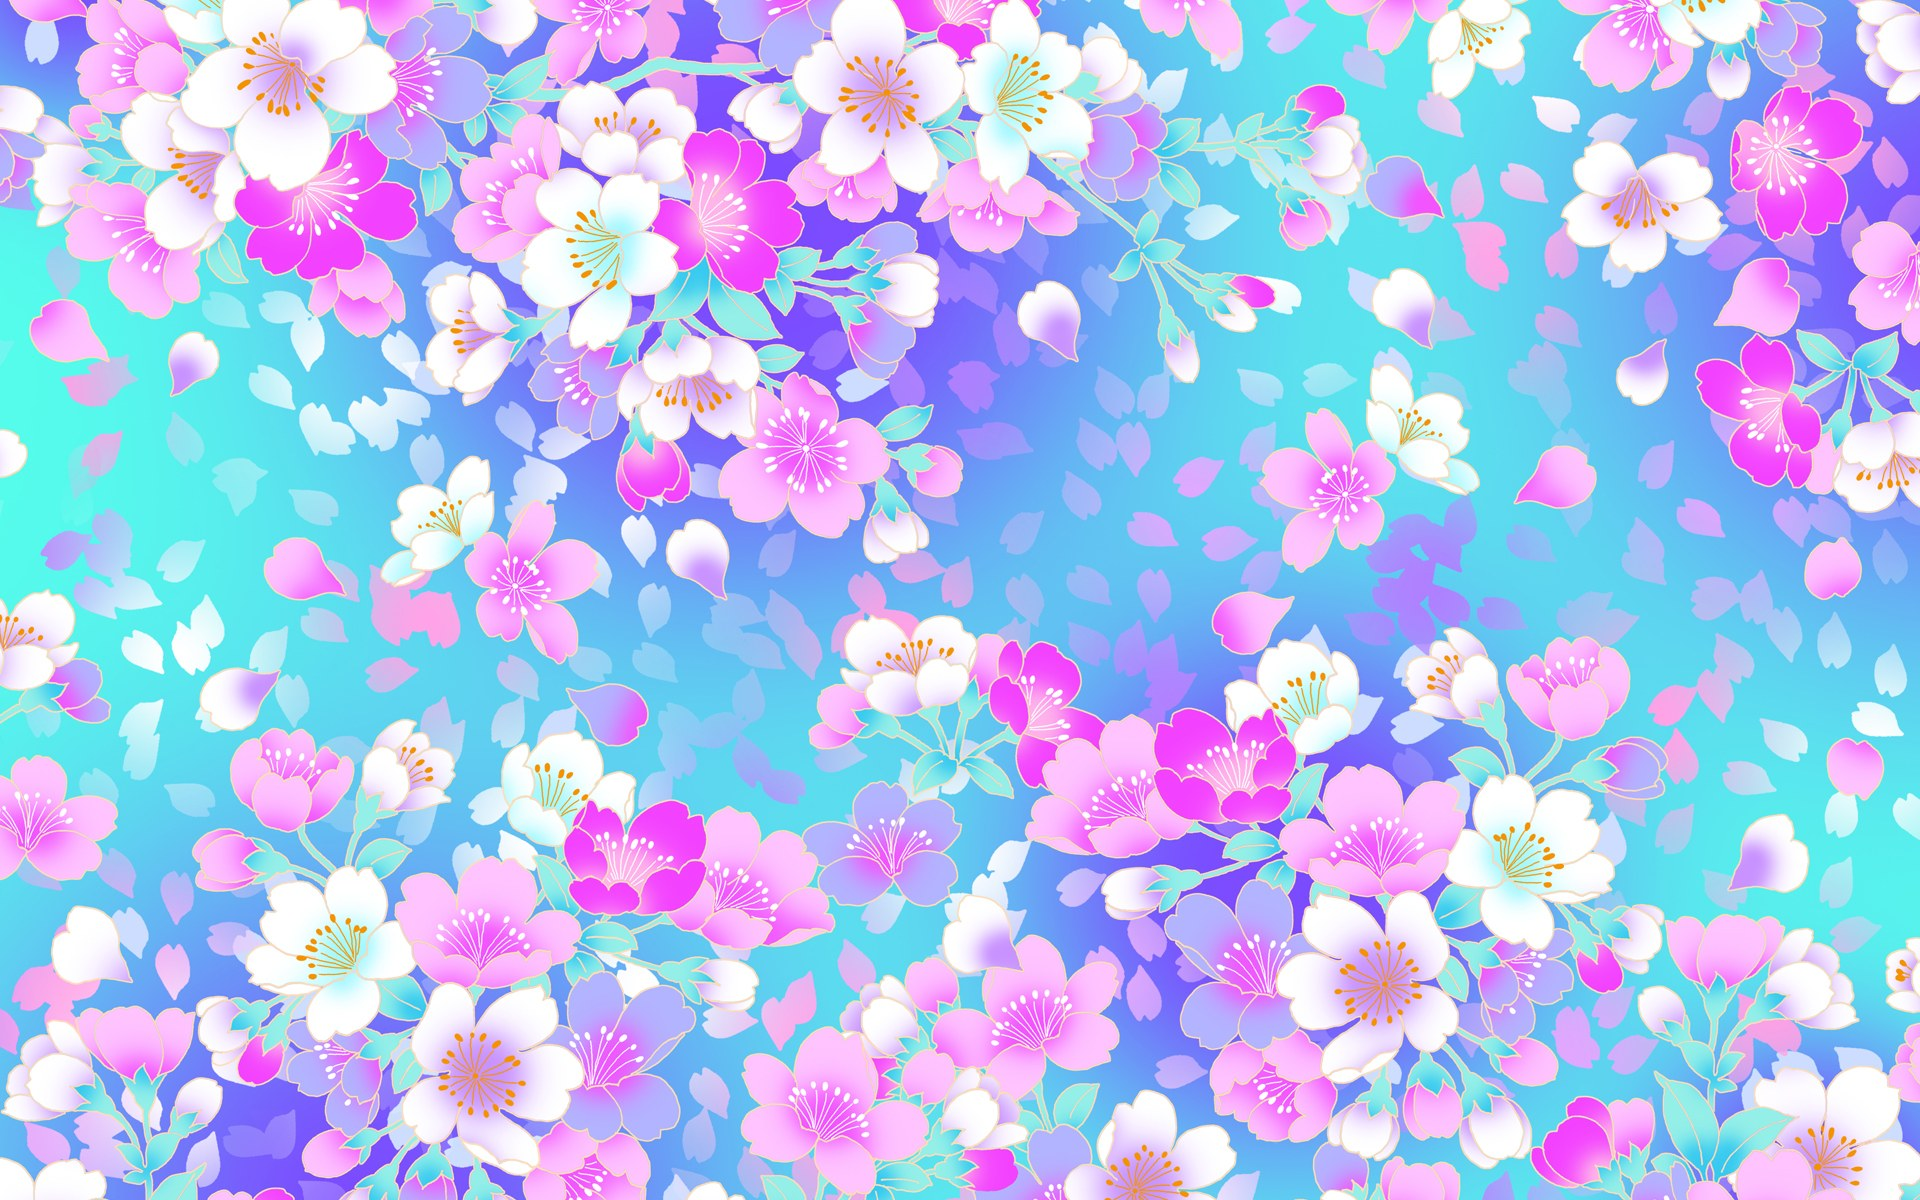 Iphone 5 Wallpaper Floral Floral Wallpapers High Quality Download Free